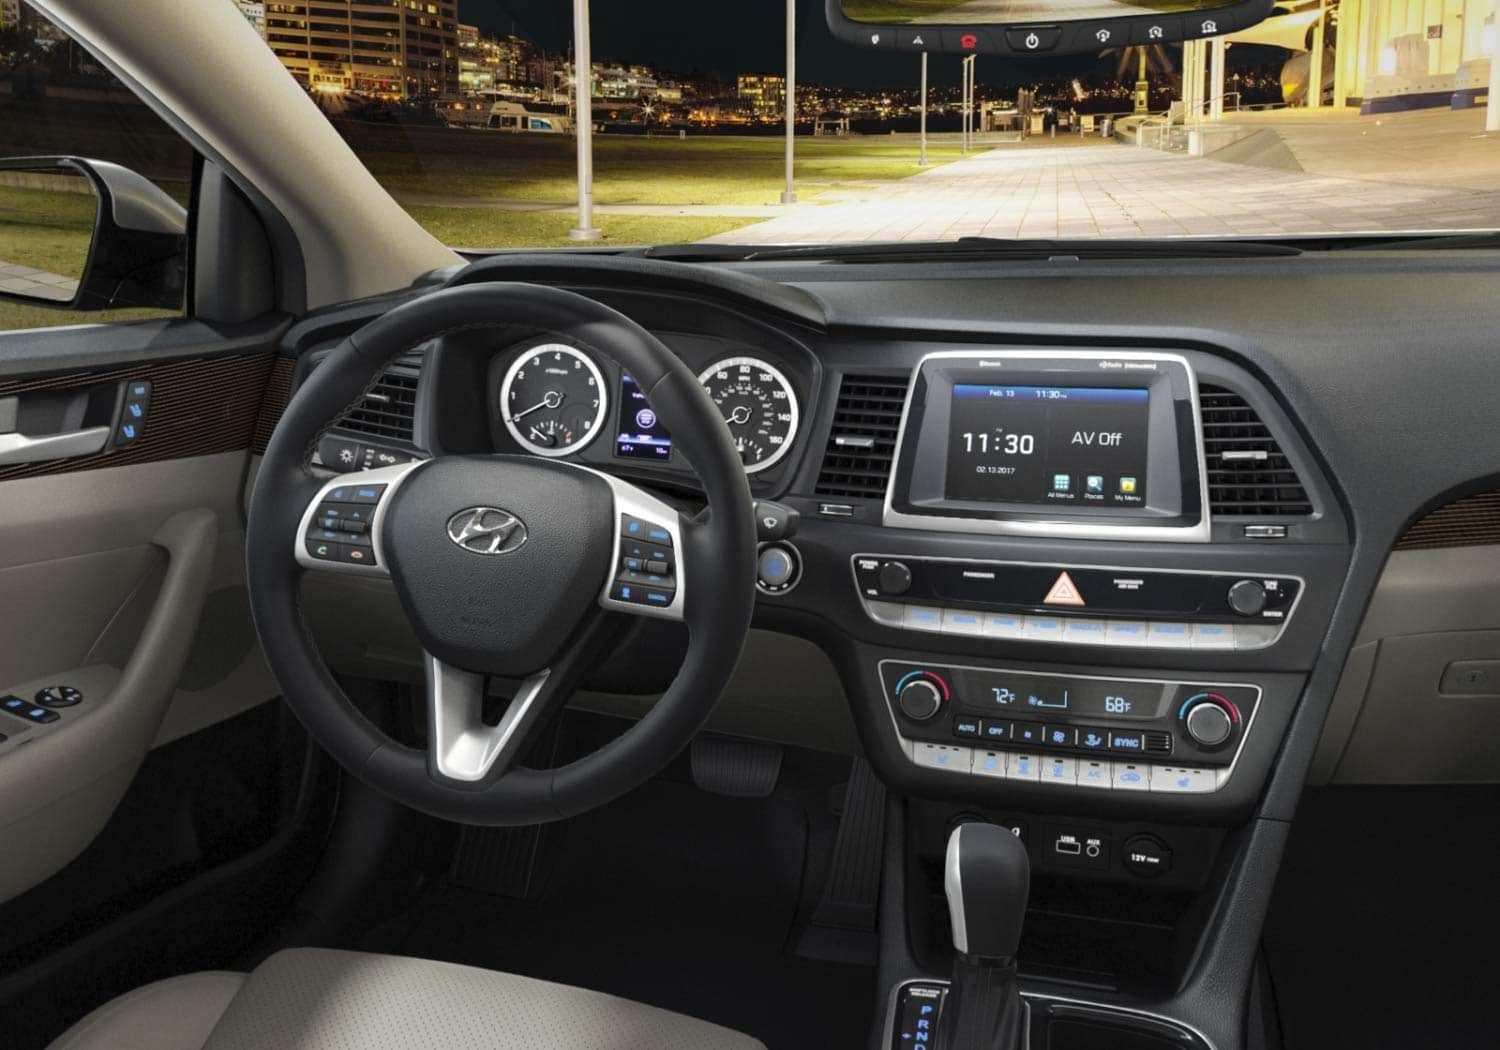 78 Best Review 2019 Hyundai Sonata Limited Pictures by 2019 Hyundai Sonata Limited